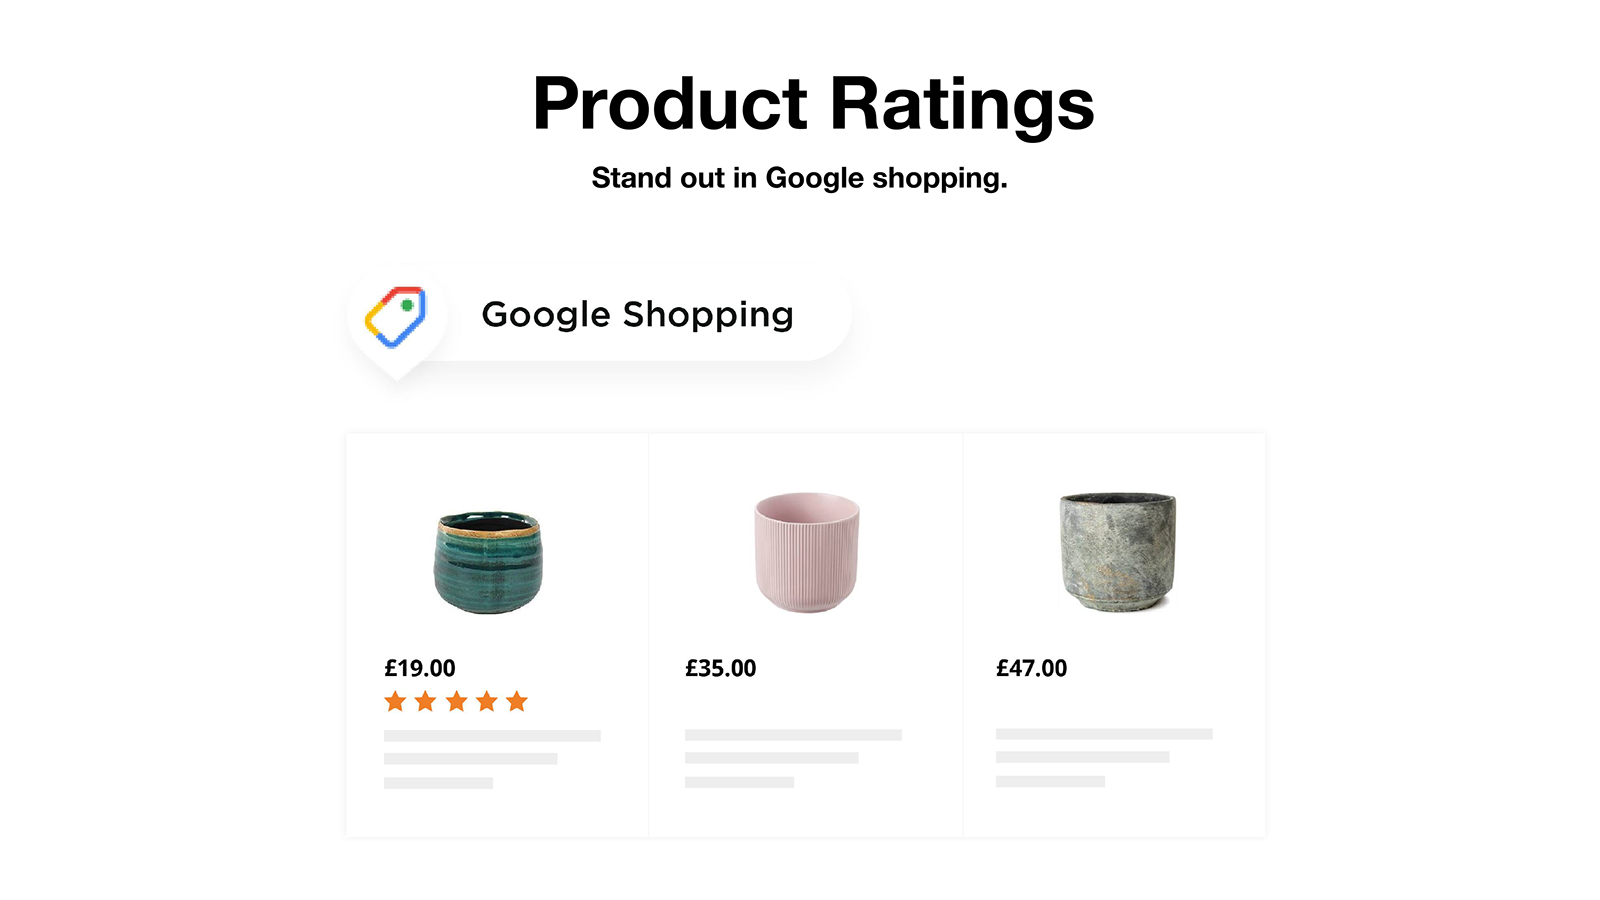 Product Reviews in Google